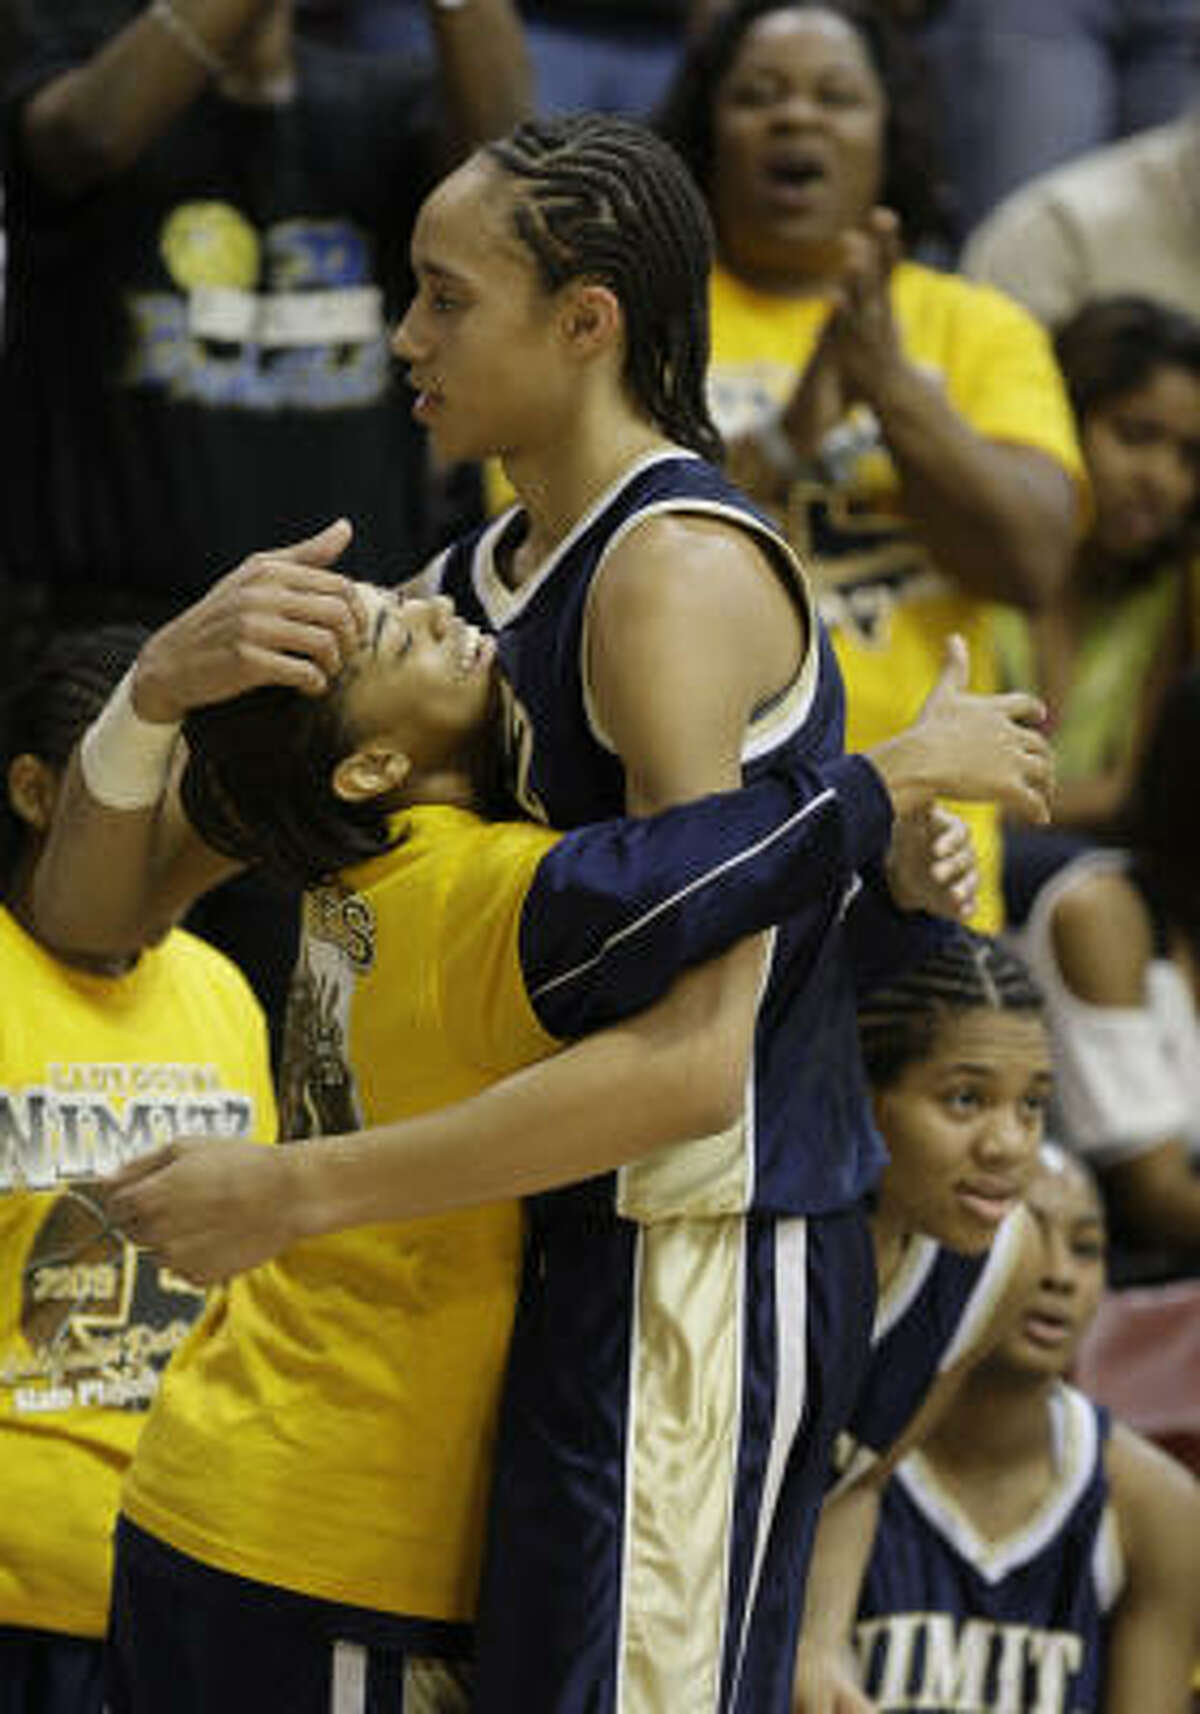 SaKatherine Johnson, left, and Brittney Griner celebrate the 45-26 victory over Bellaire in the final seconds.